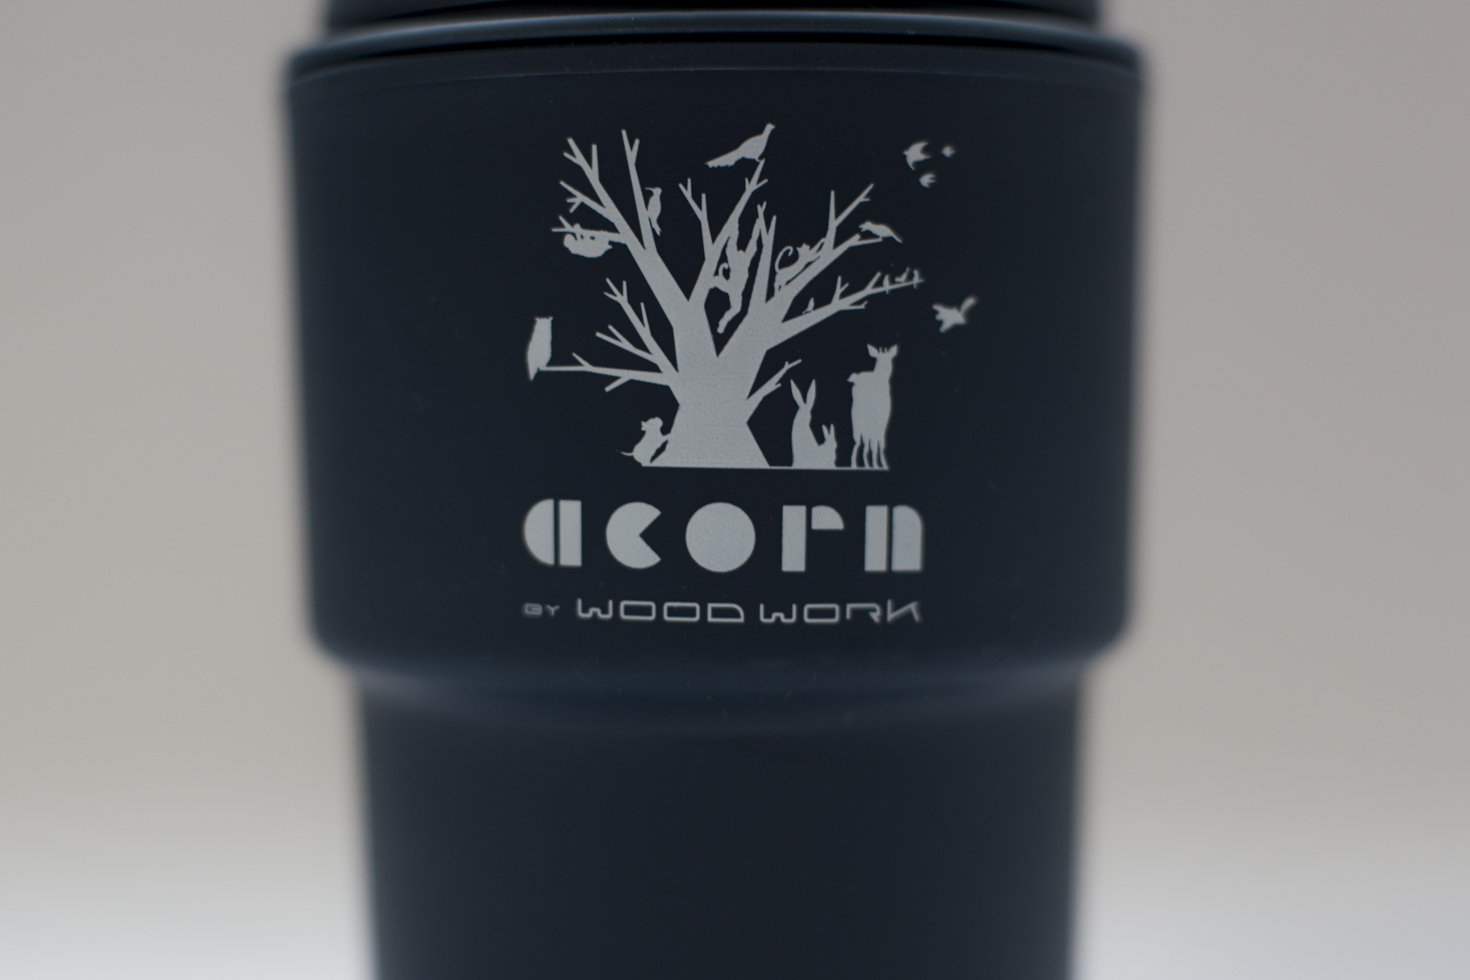 acorn by WOODWORK